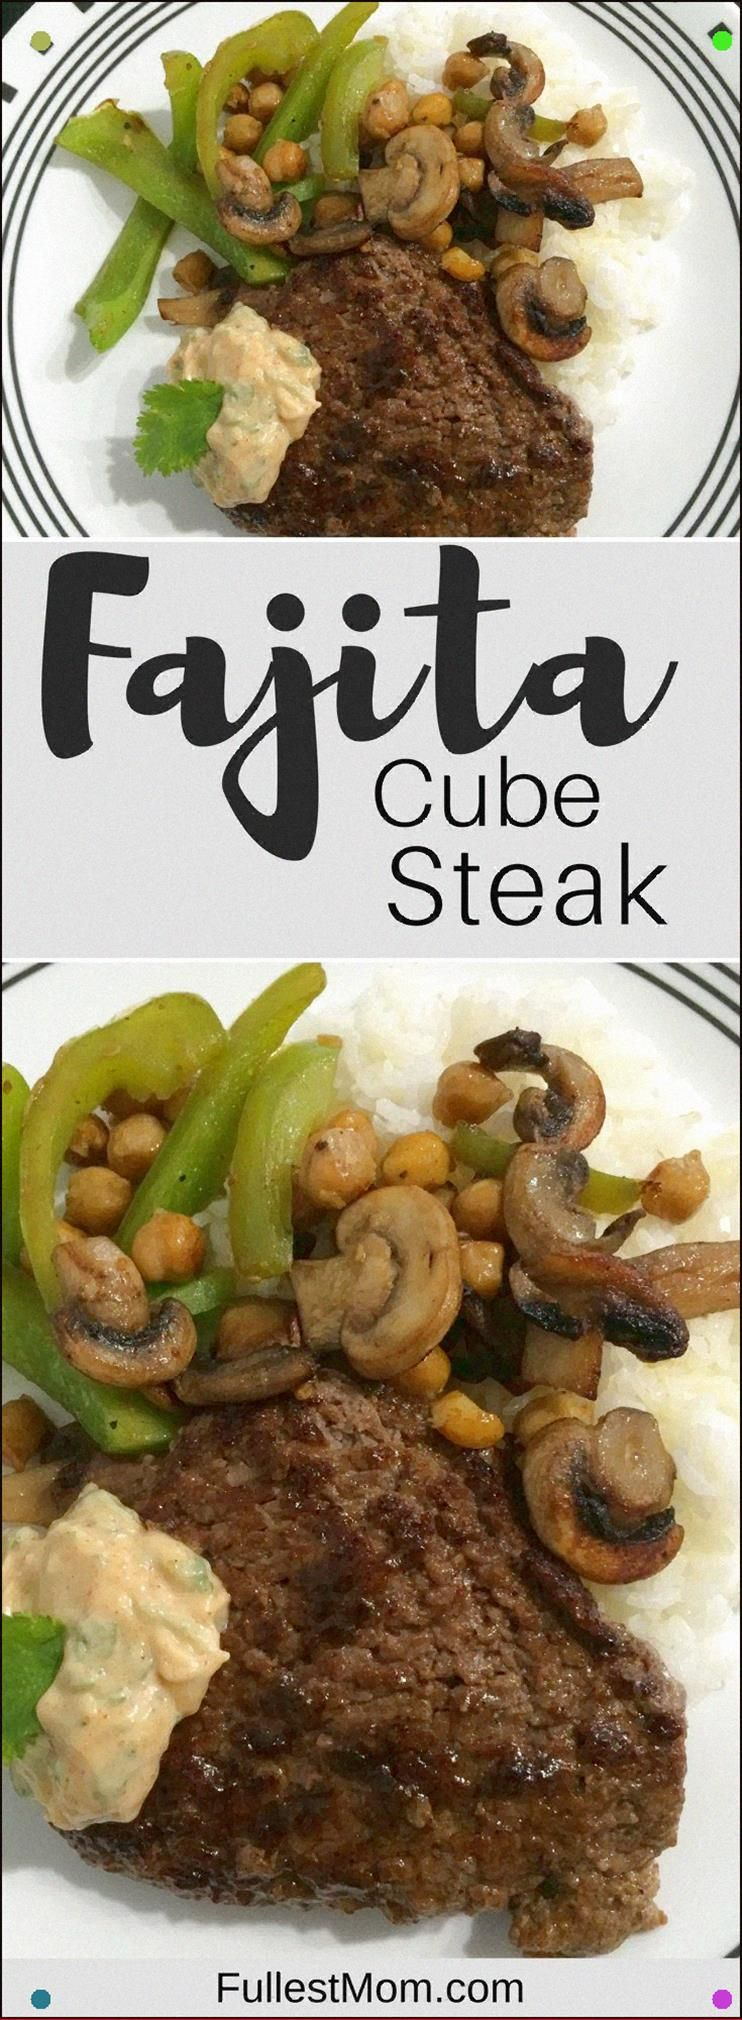 This Fajita Cube Steak Recipe Is Melt In Your Mouth Tender And Uses It's Own Diy Fajita Seasoning. Avoid The Packaging. You've Got All The Spices You Need For An Easy And Quick Dinner. #beeffajitarecipe